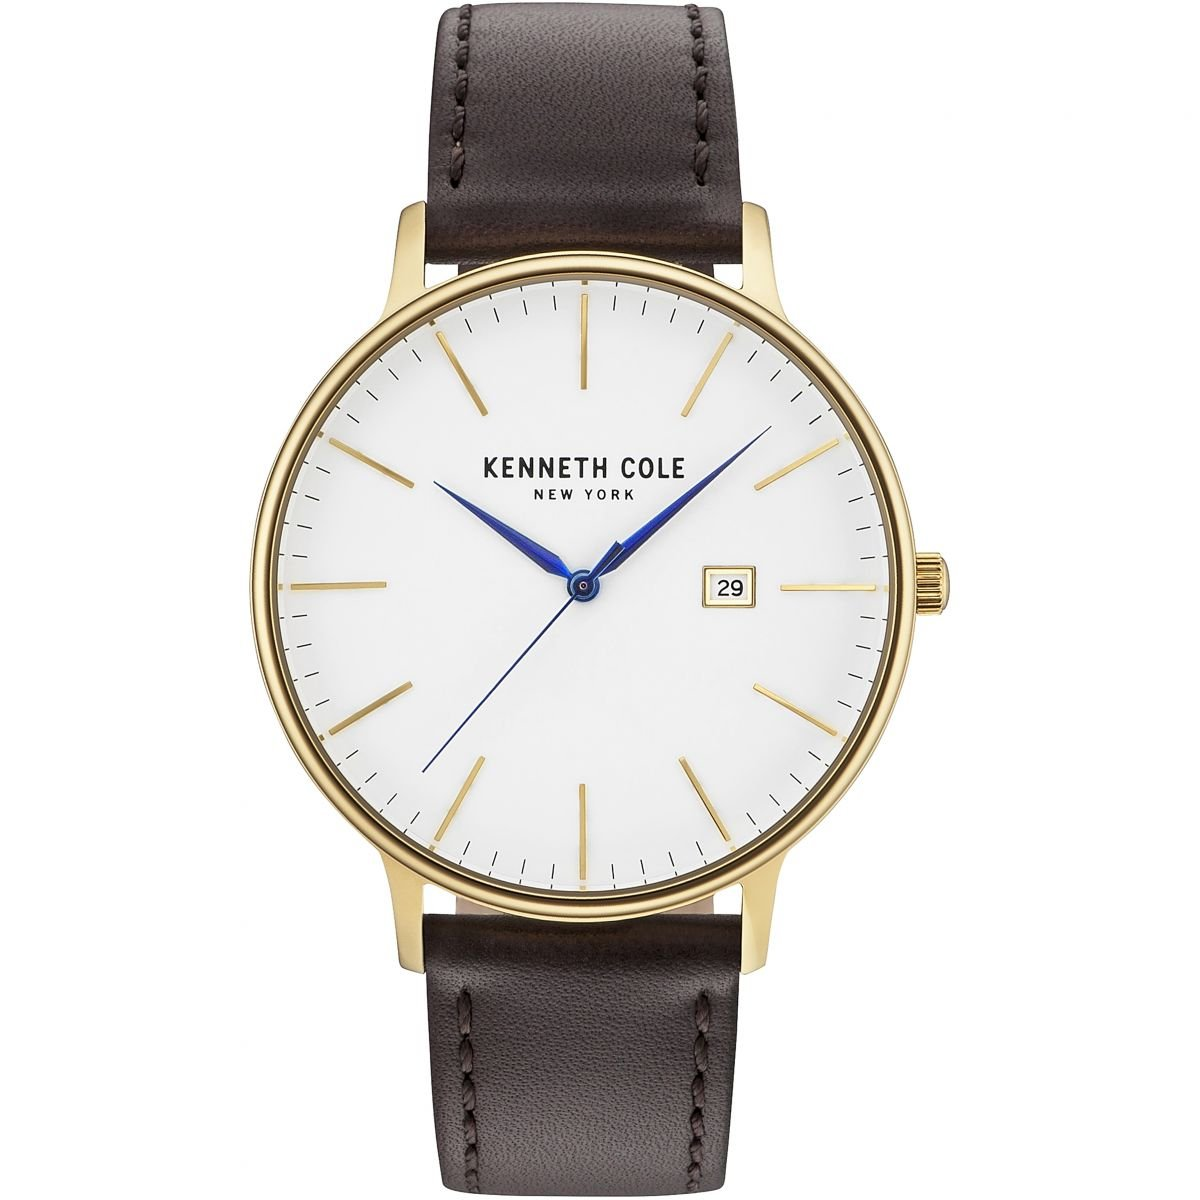 7ac7ea451a4 Amazon.com  Kenneth Cole New York Men s  Classic  Quartz Stainless Steel  and Leather Dress Watch